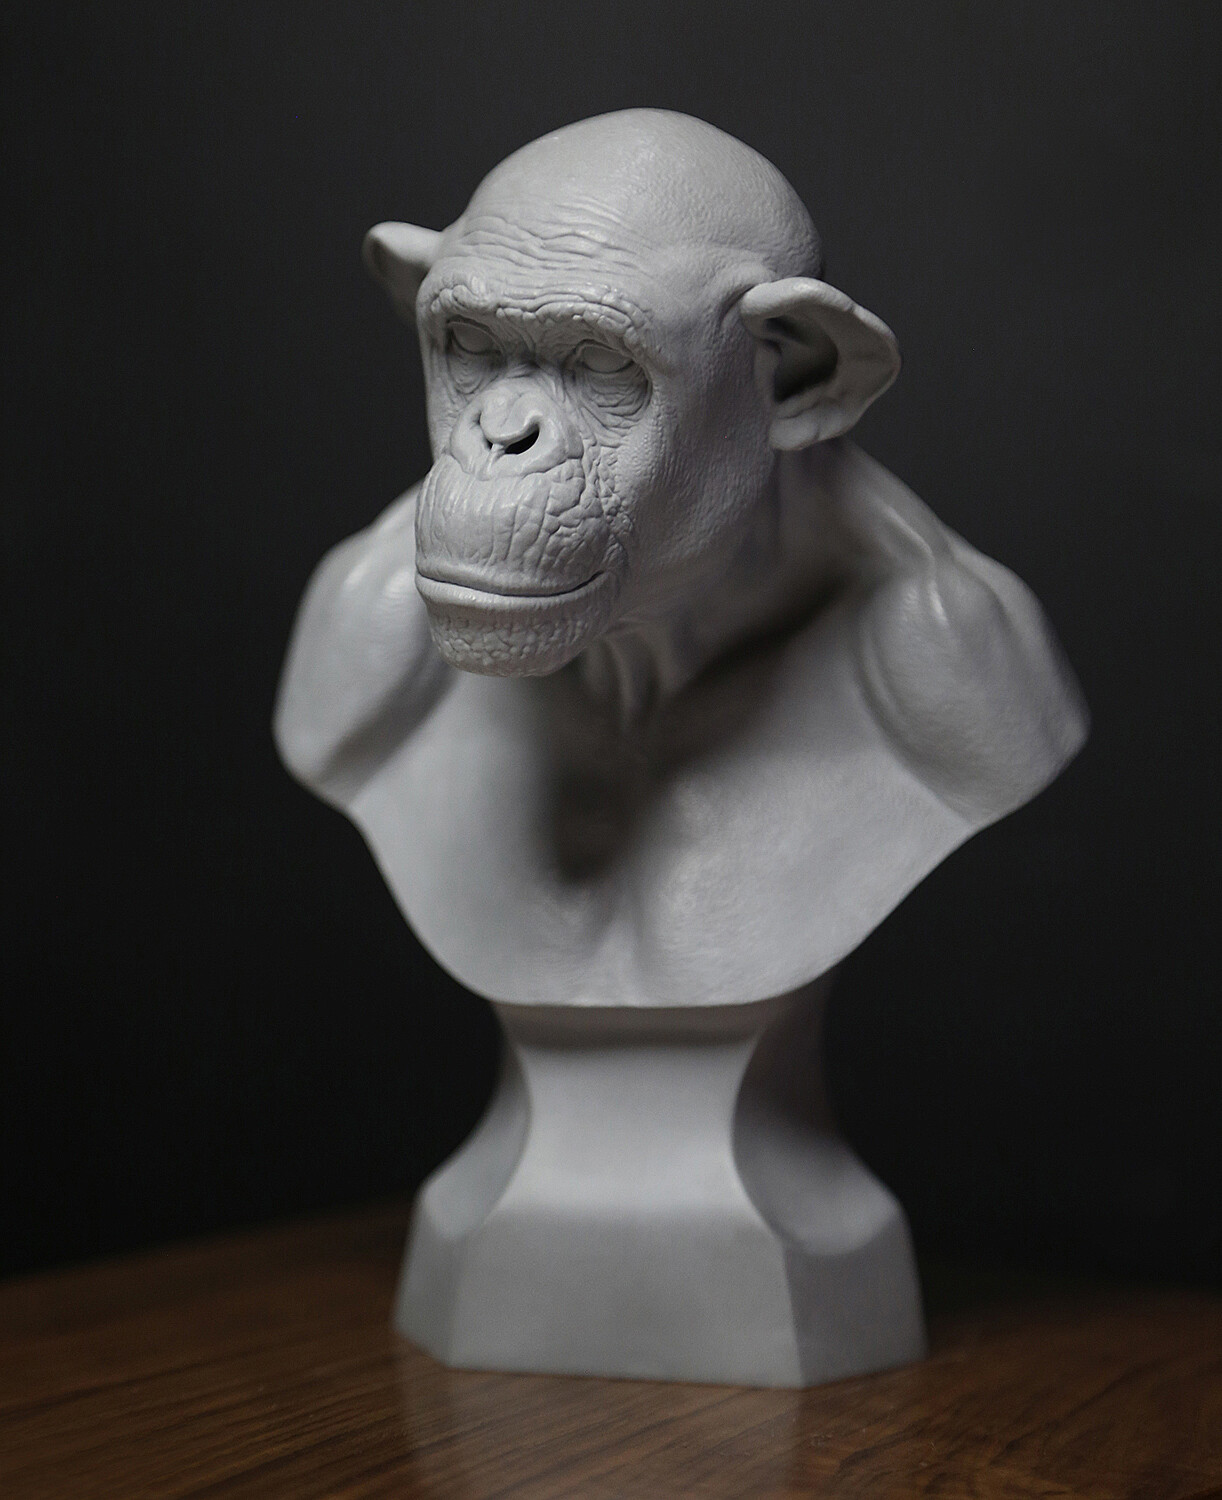 Lulu 1:3 Scale Bust (Collectible)